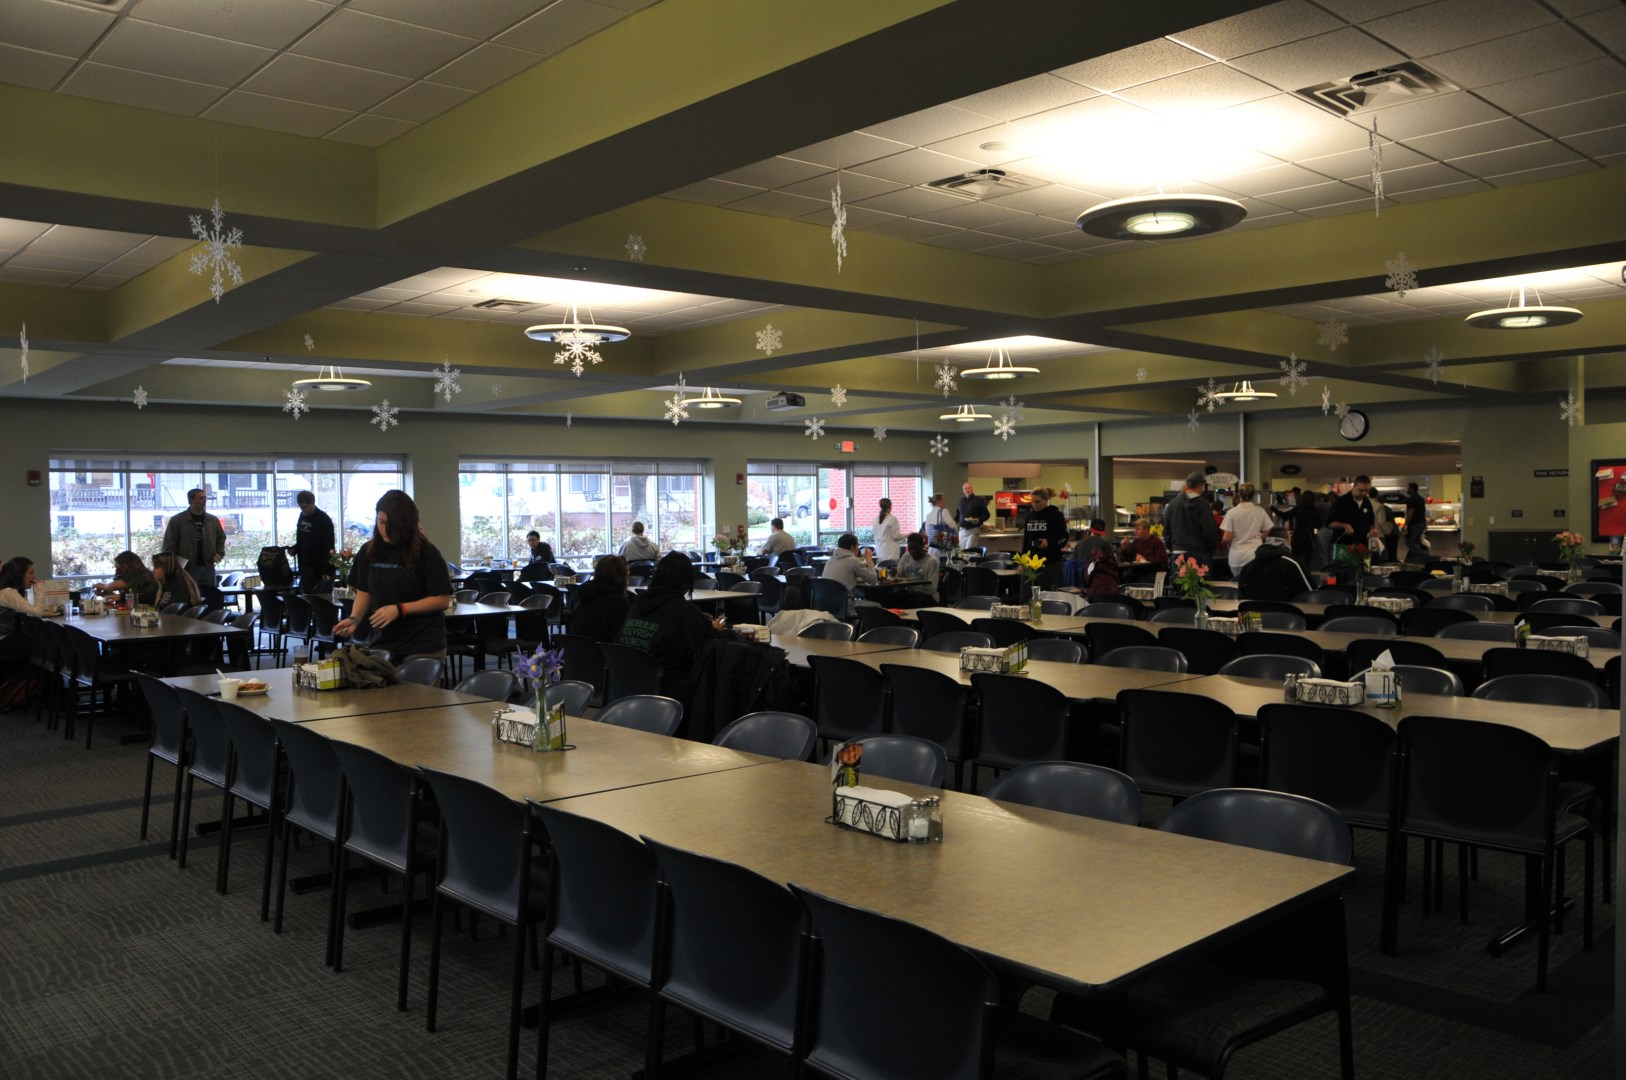 Winter S Dining Hall Cafeteria Campbellsville University